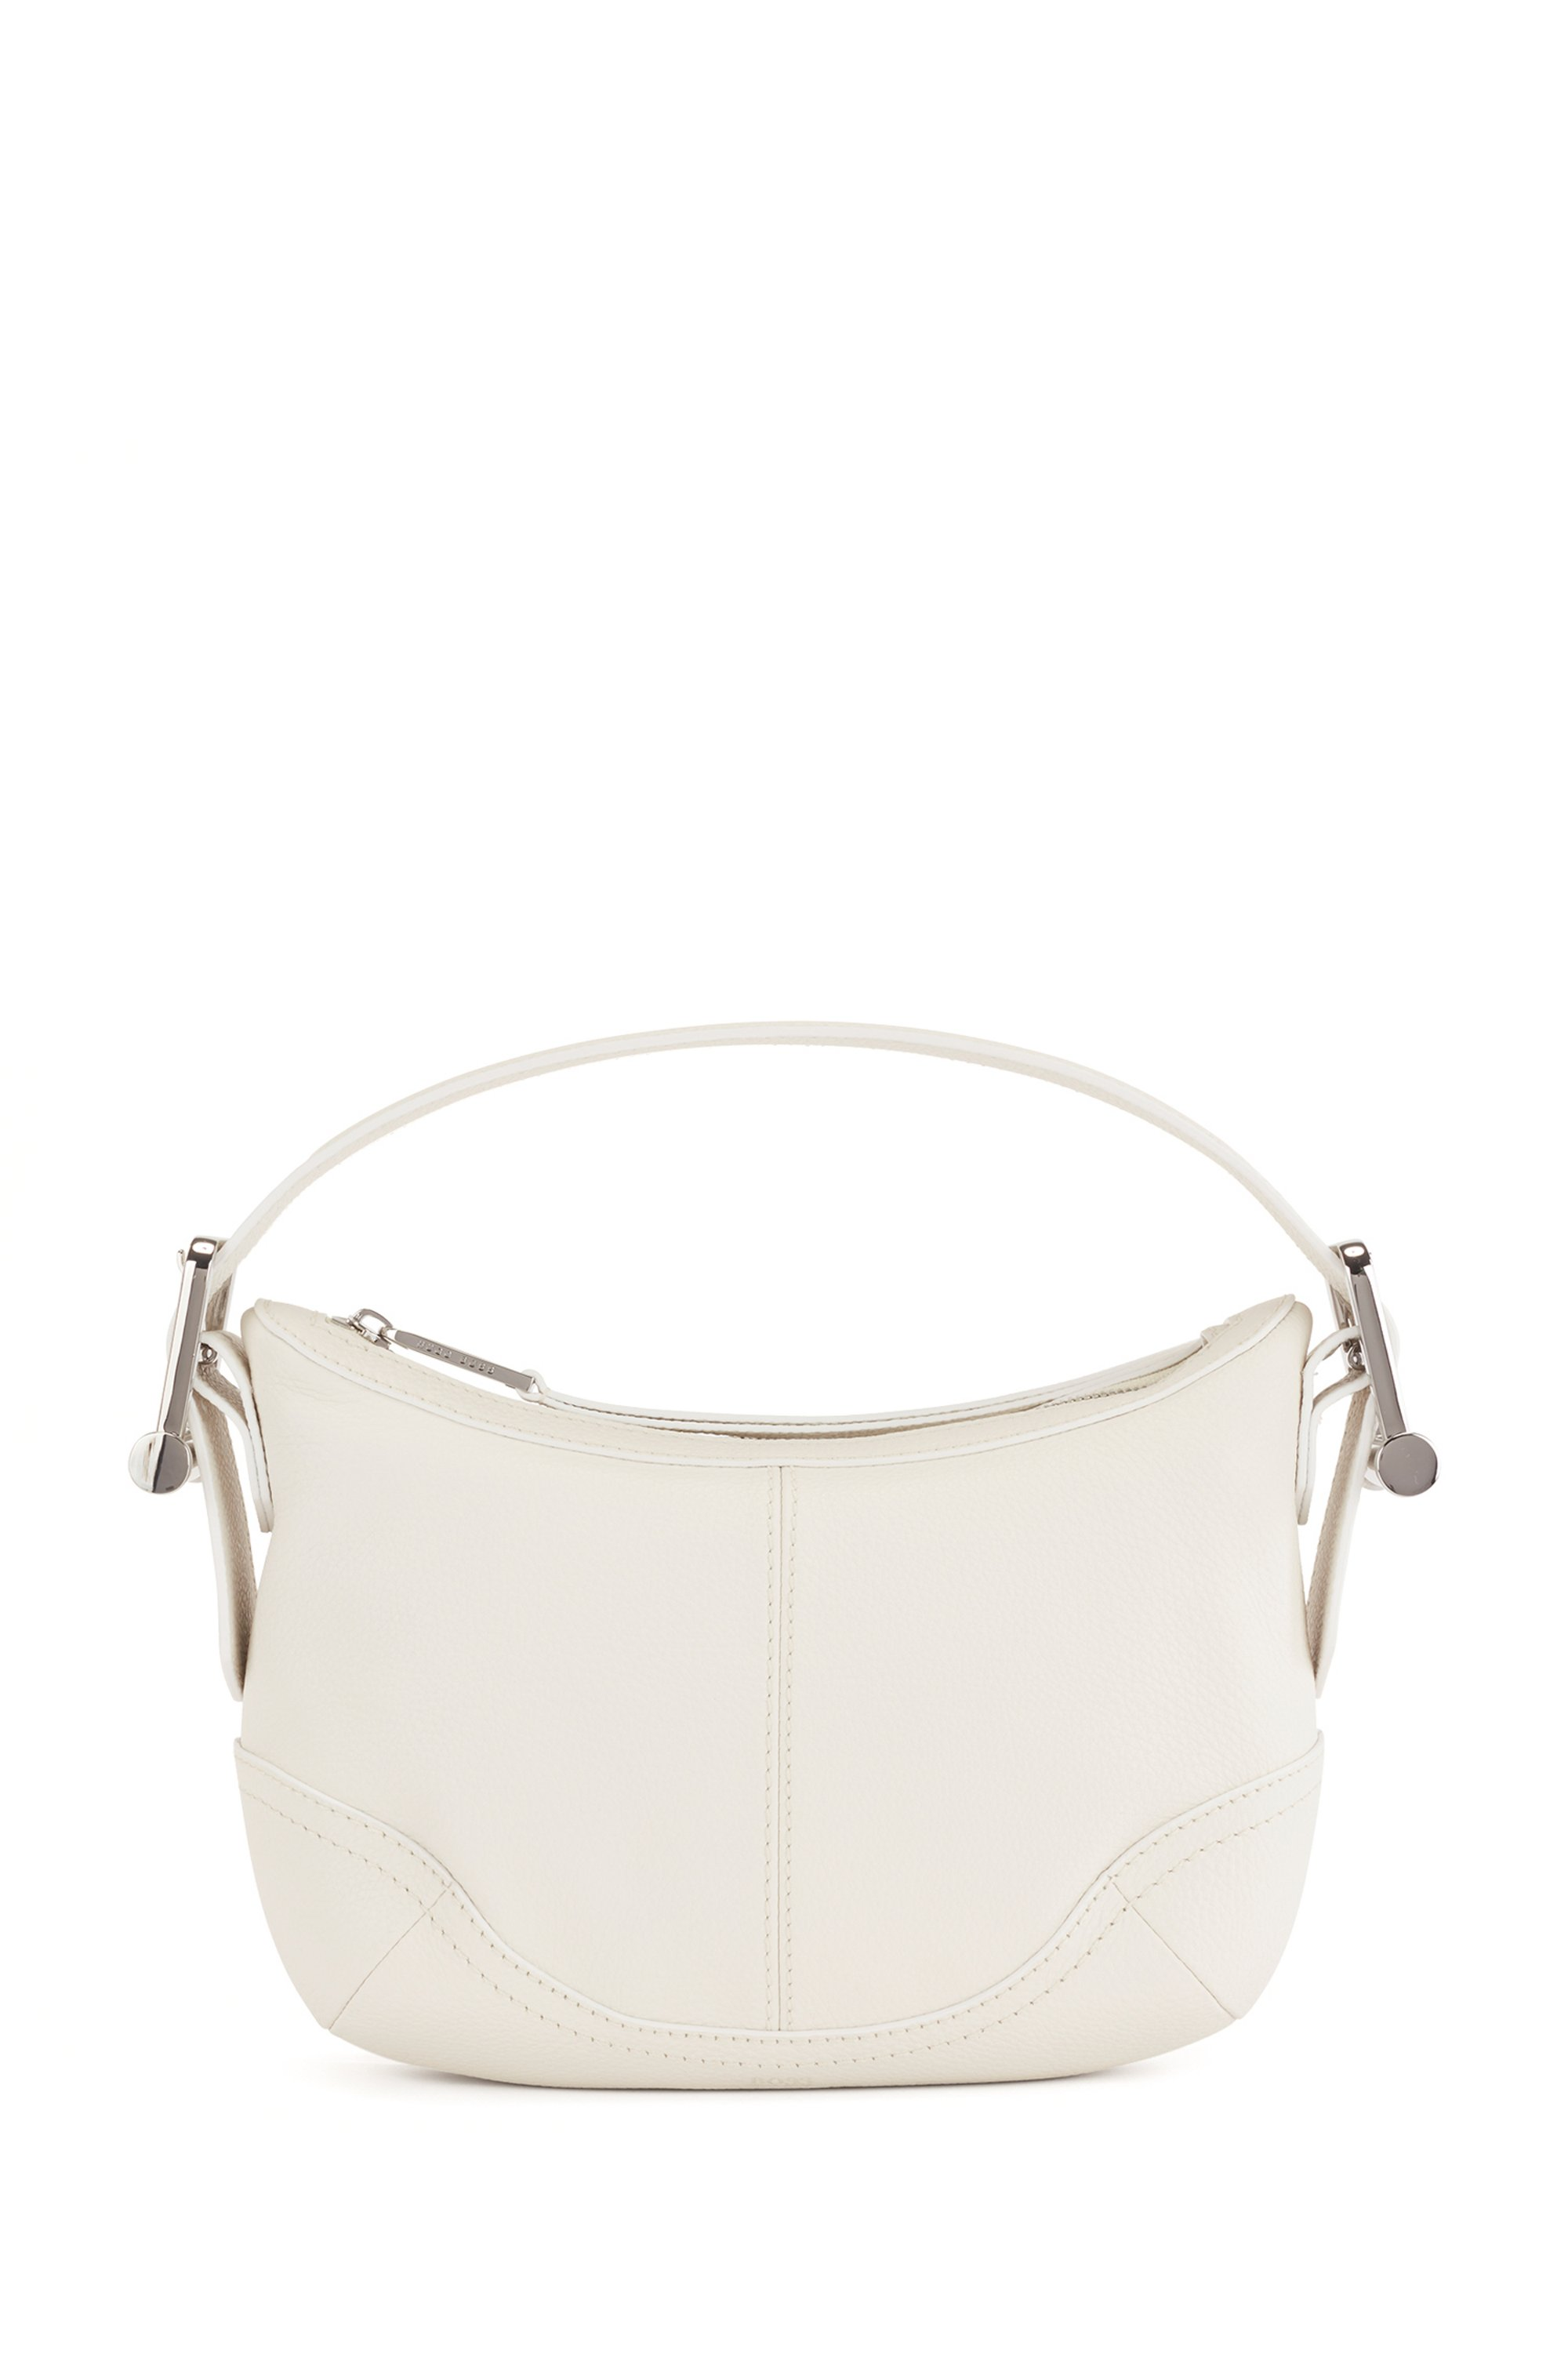 Hobo bag in grained leather with signature hardware trims, White